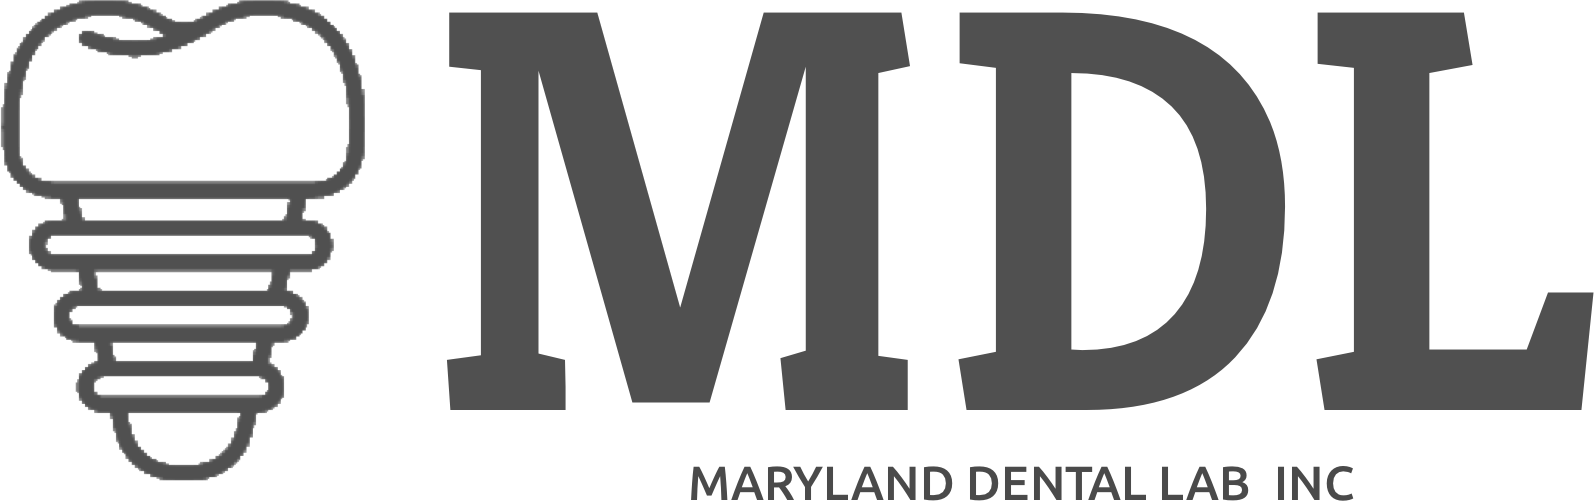 Maryland Dental Lab